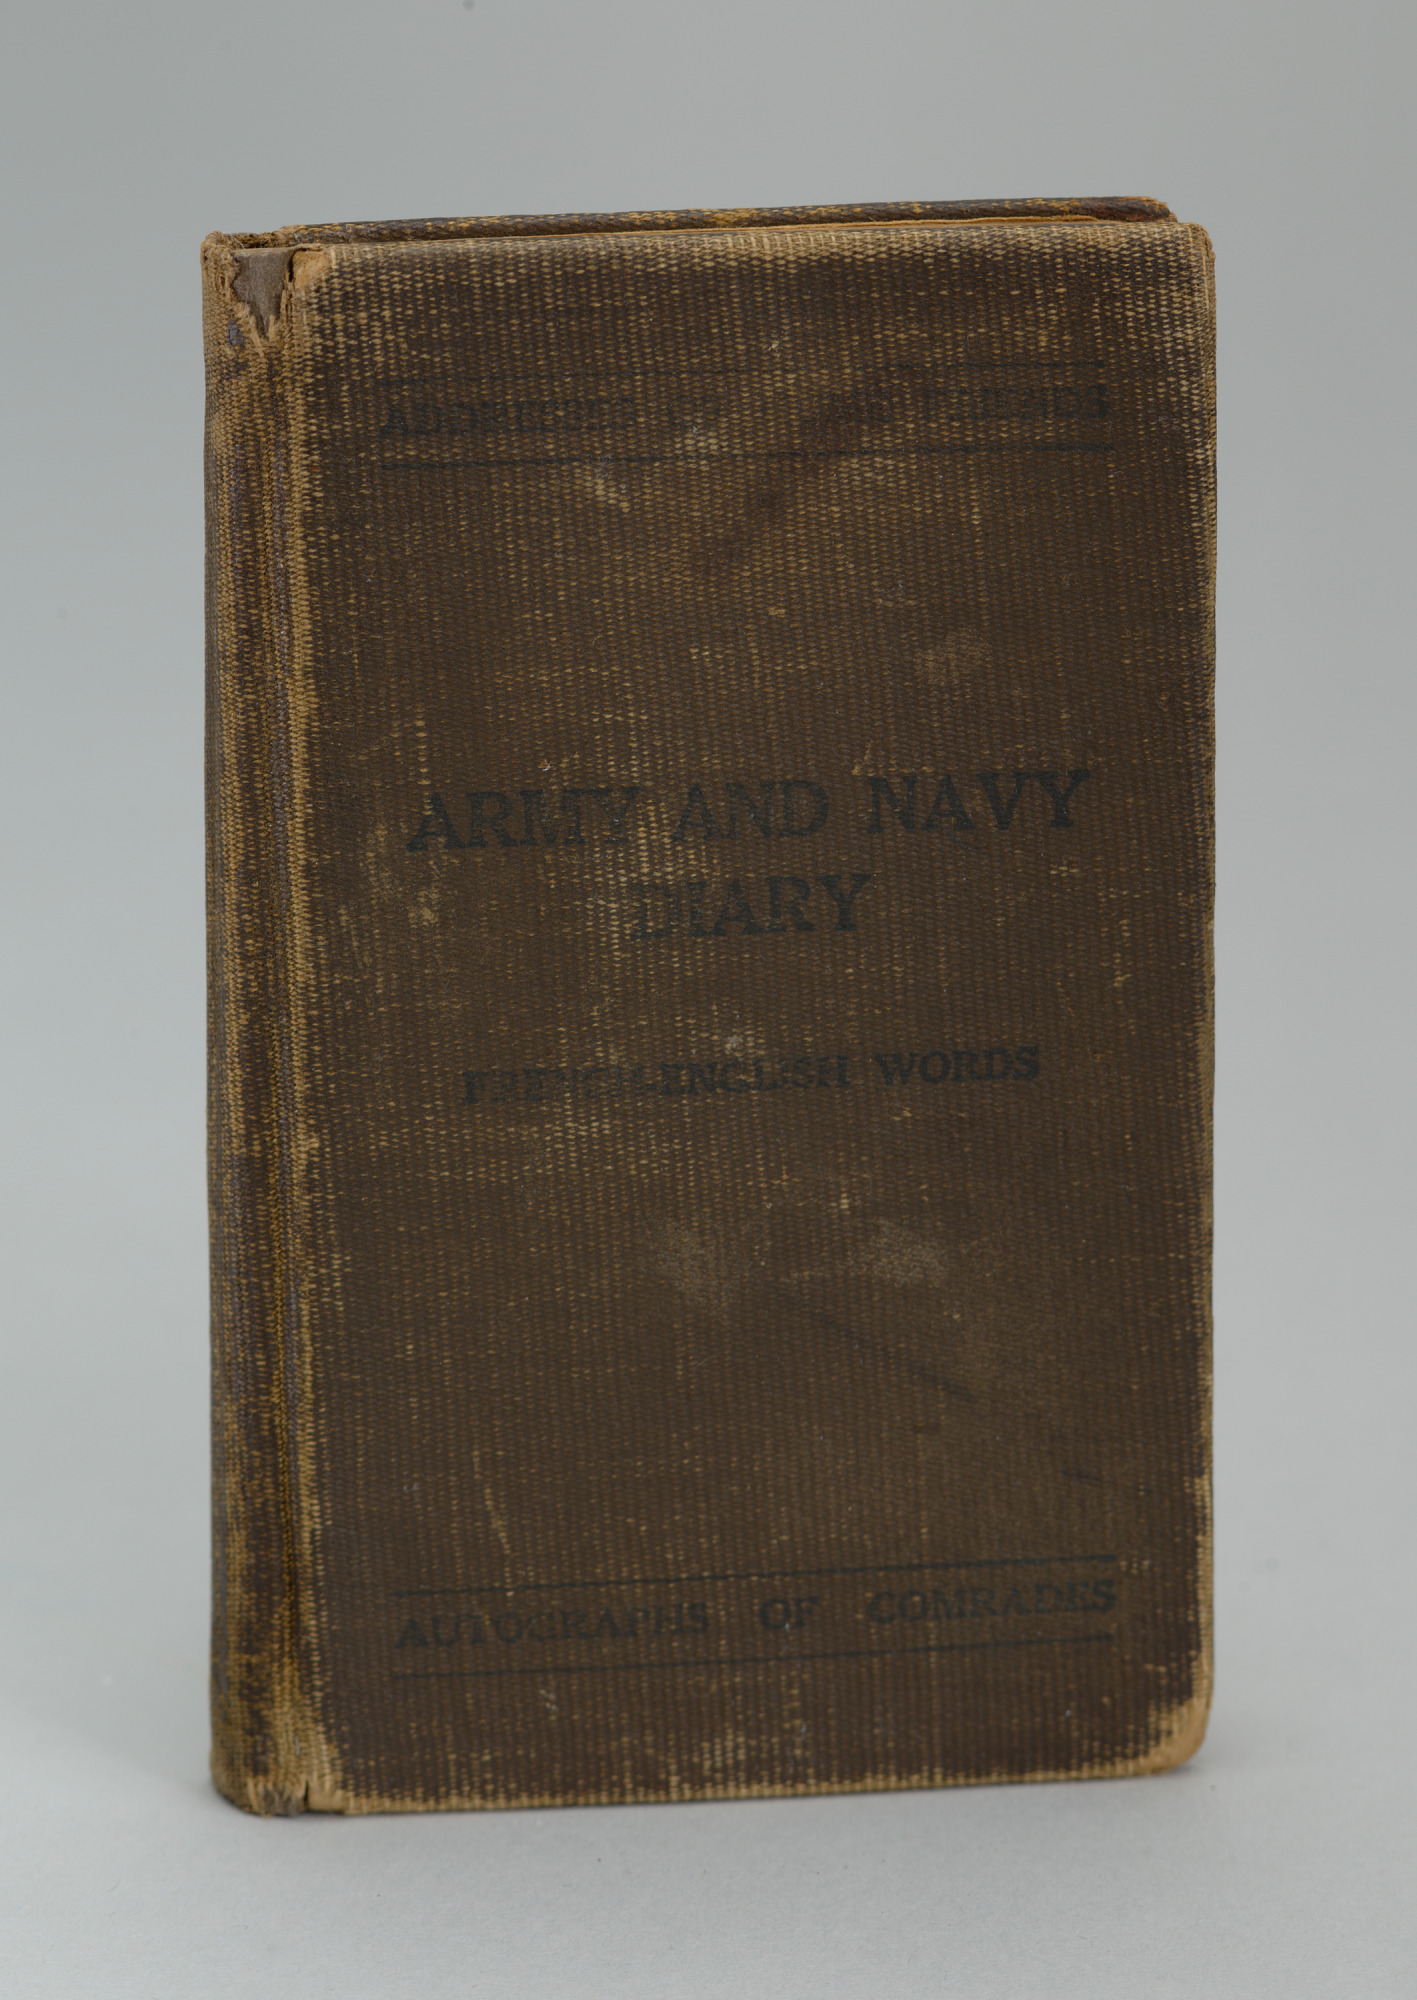 <I>Army and Navy Diary Including French-English Words</I>